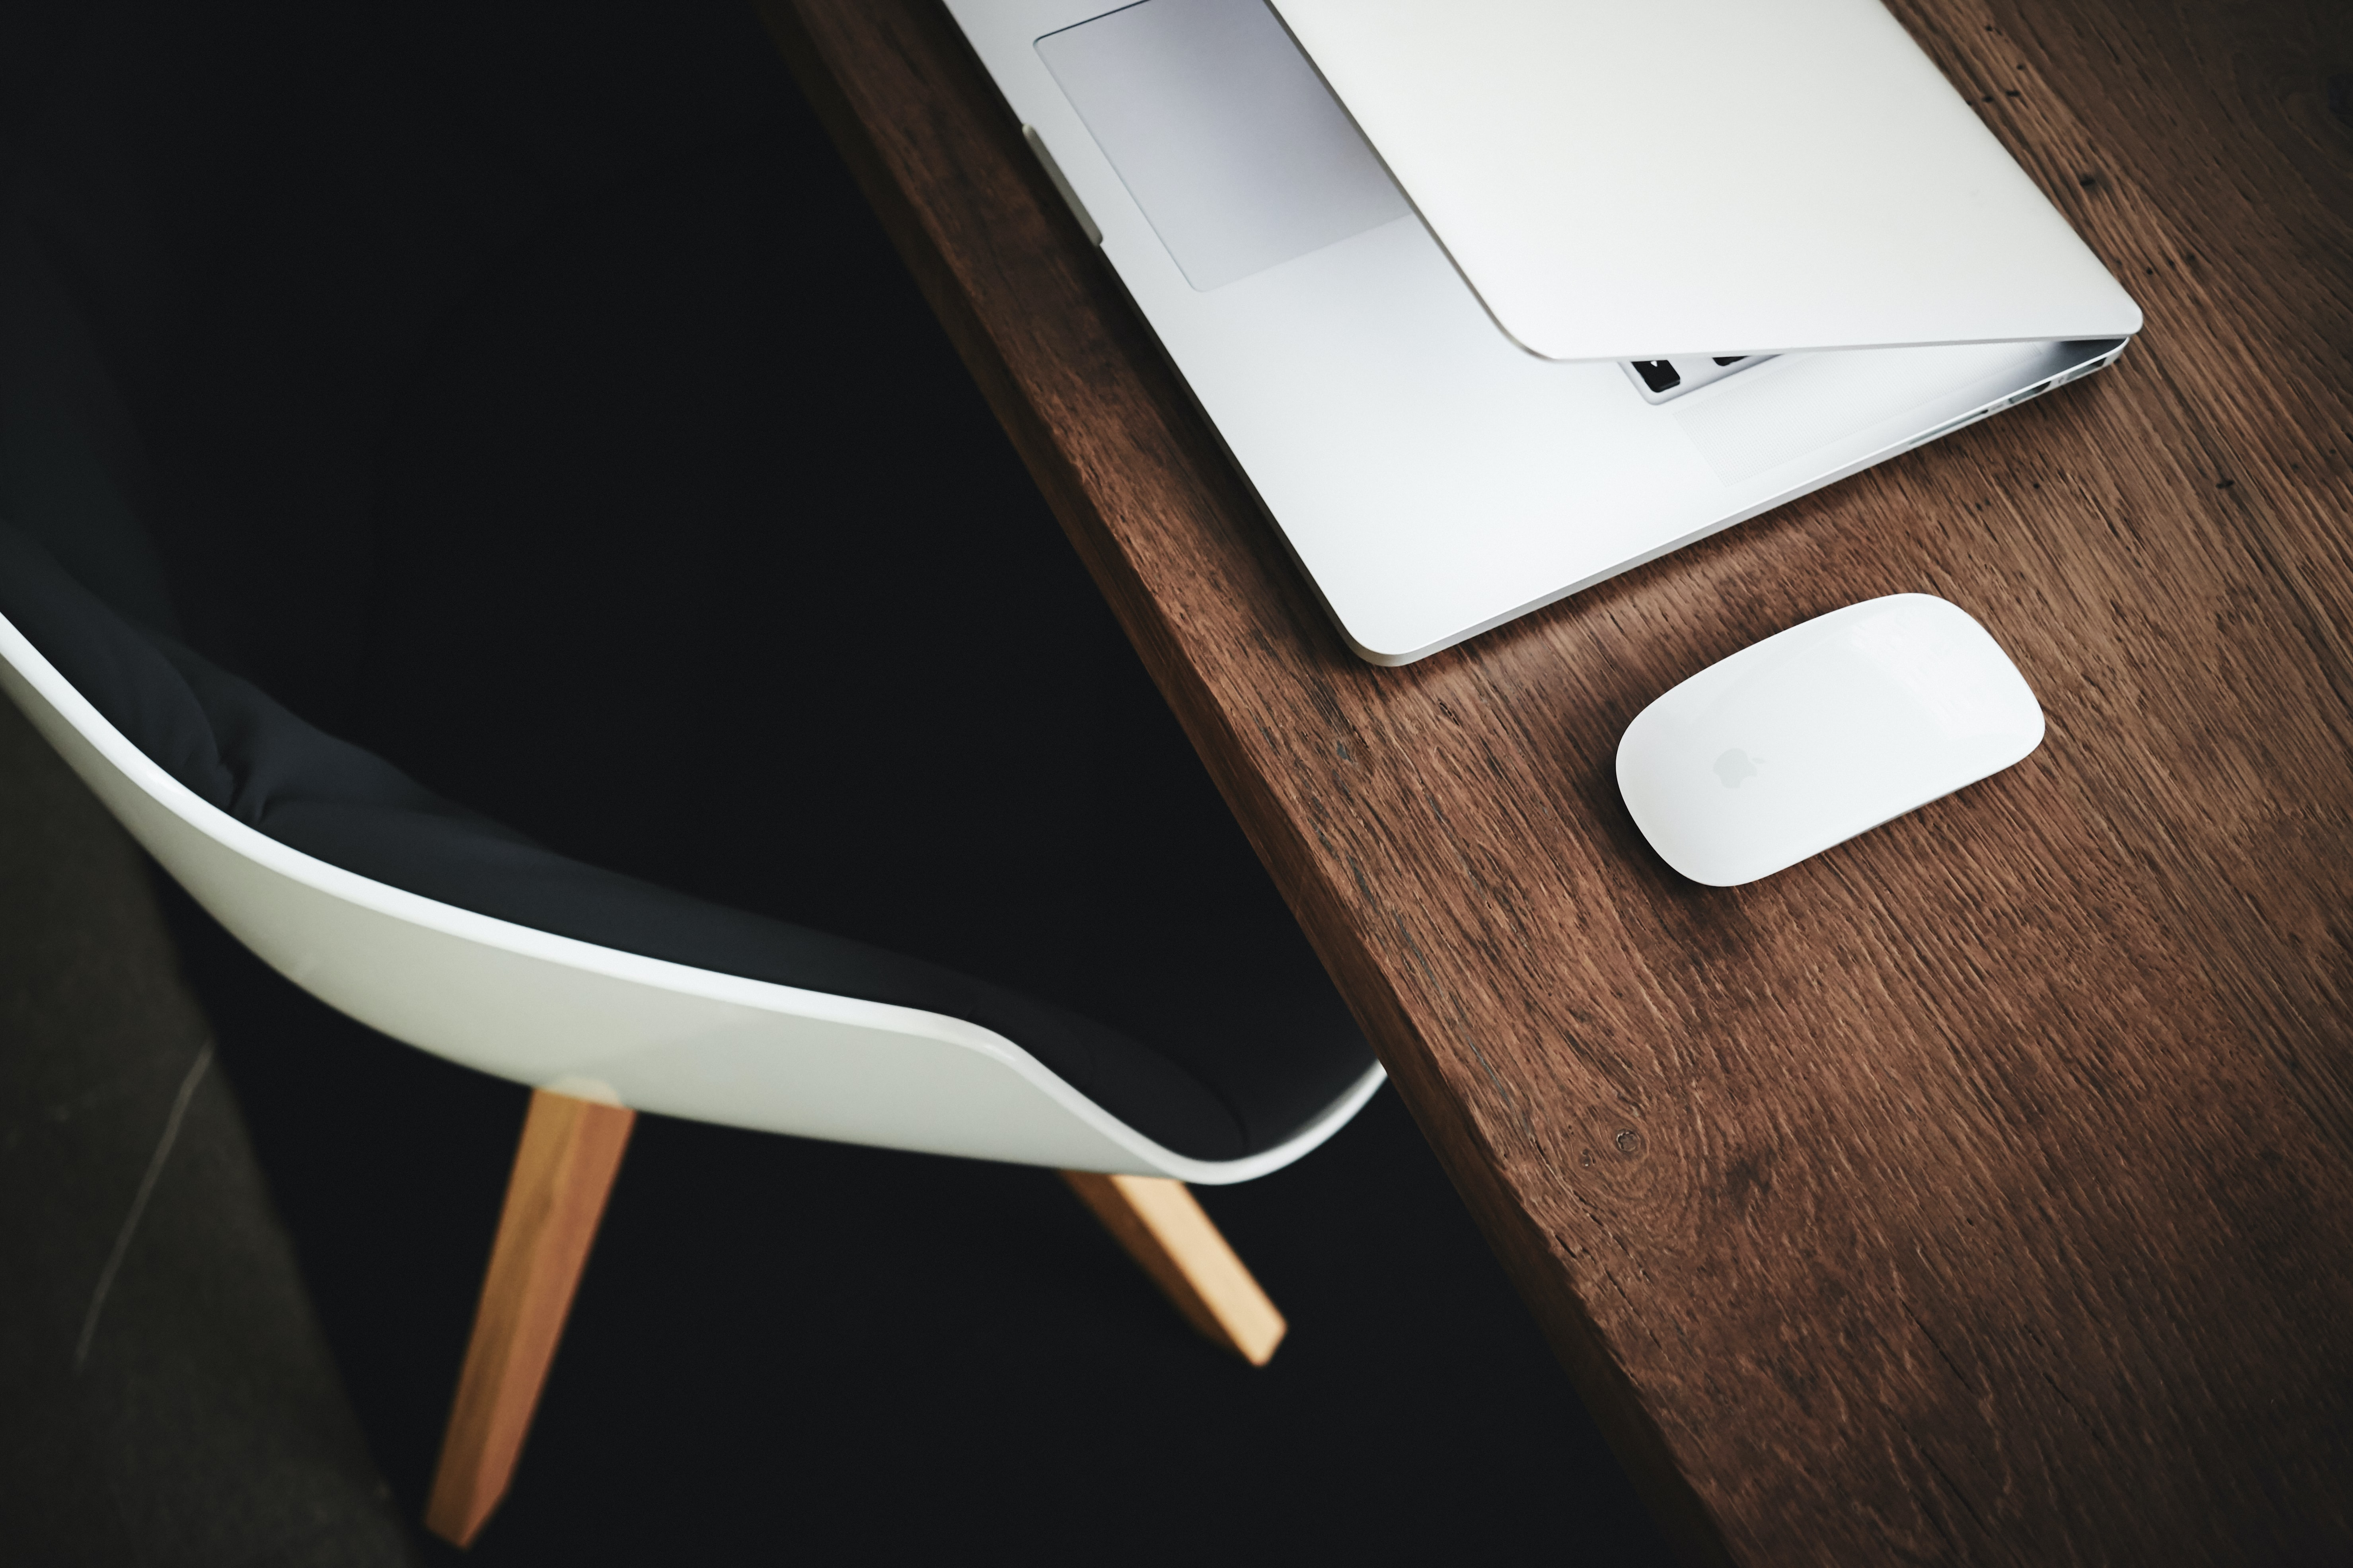 white Apple Magic mouse on brown table